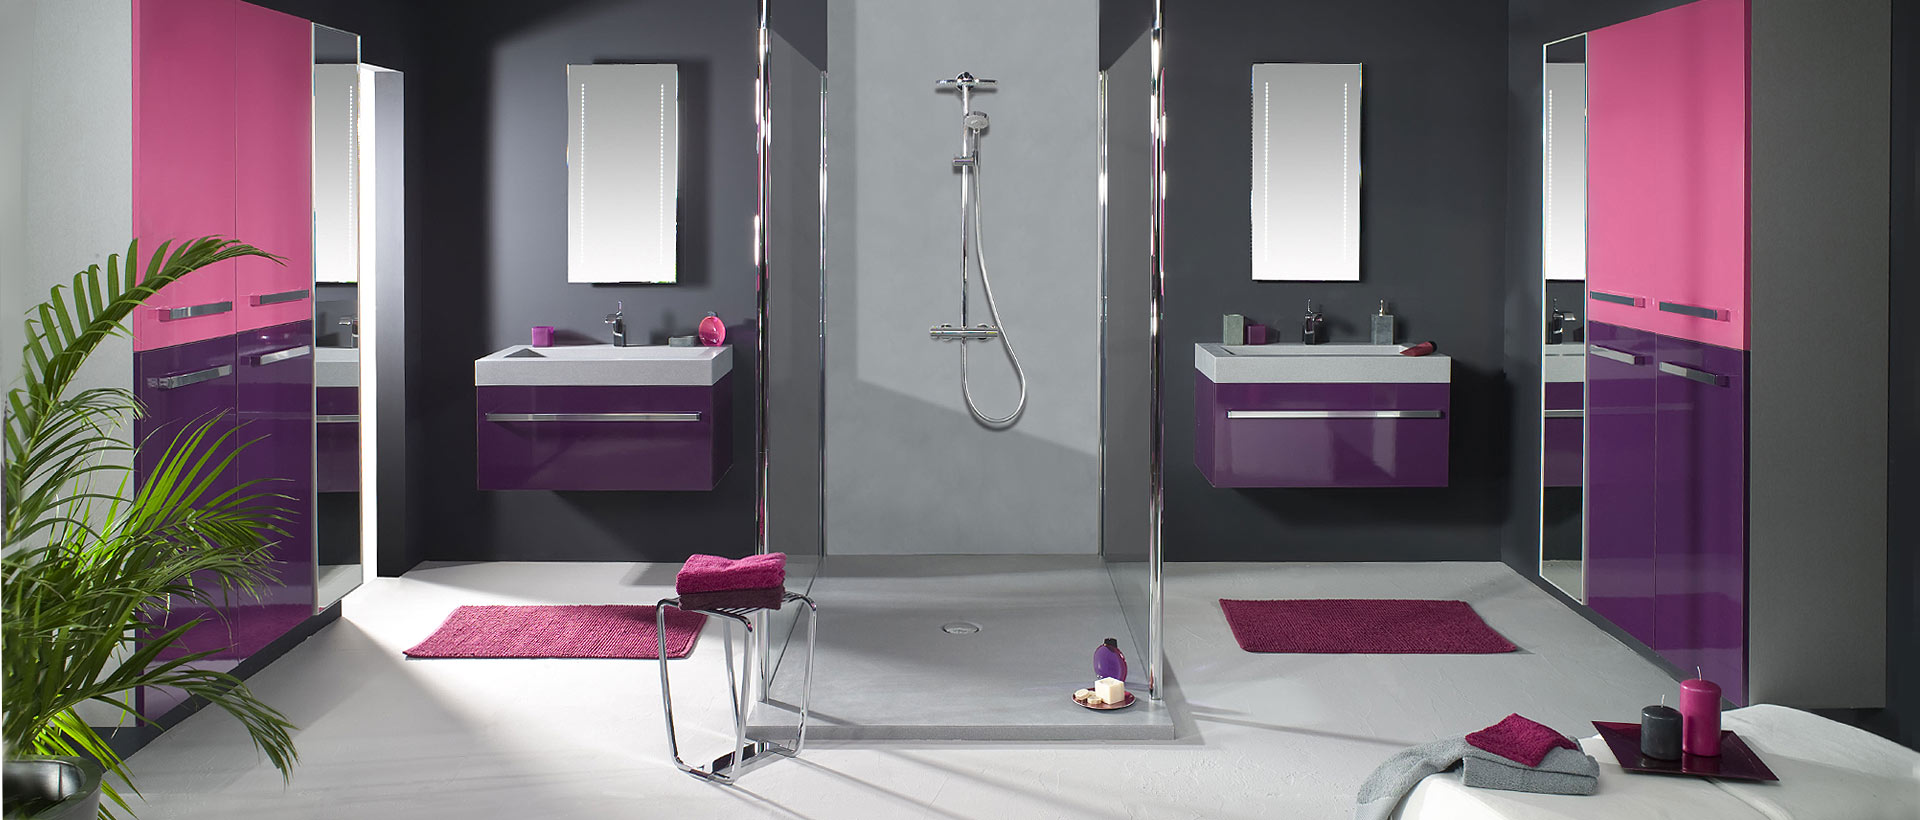 meuble de salle de bain aubergine les 8 plus beaux. Black Bedroom Furniture Sets. Home Design Ideas